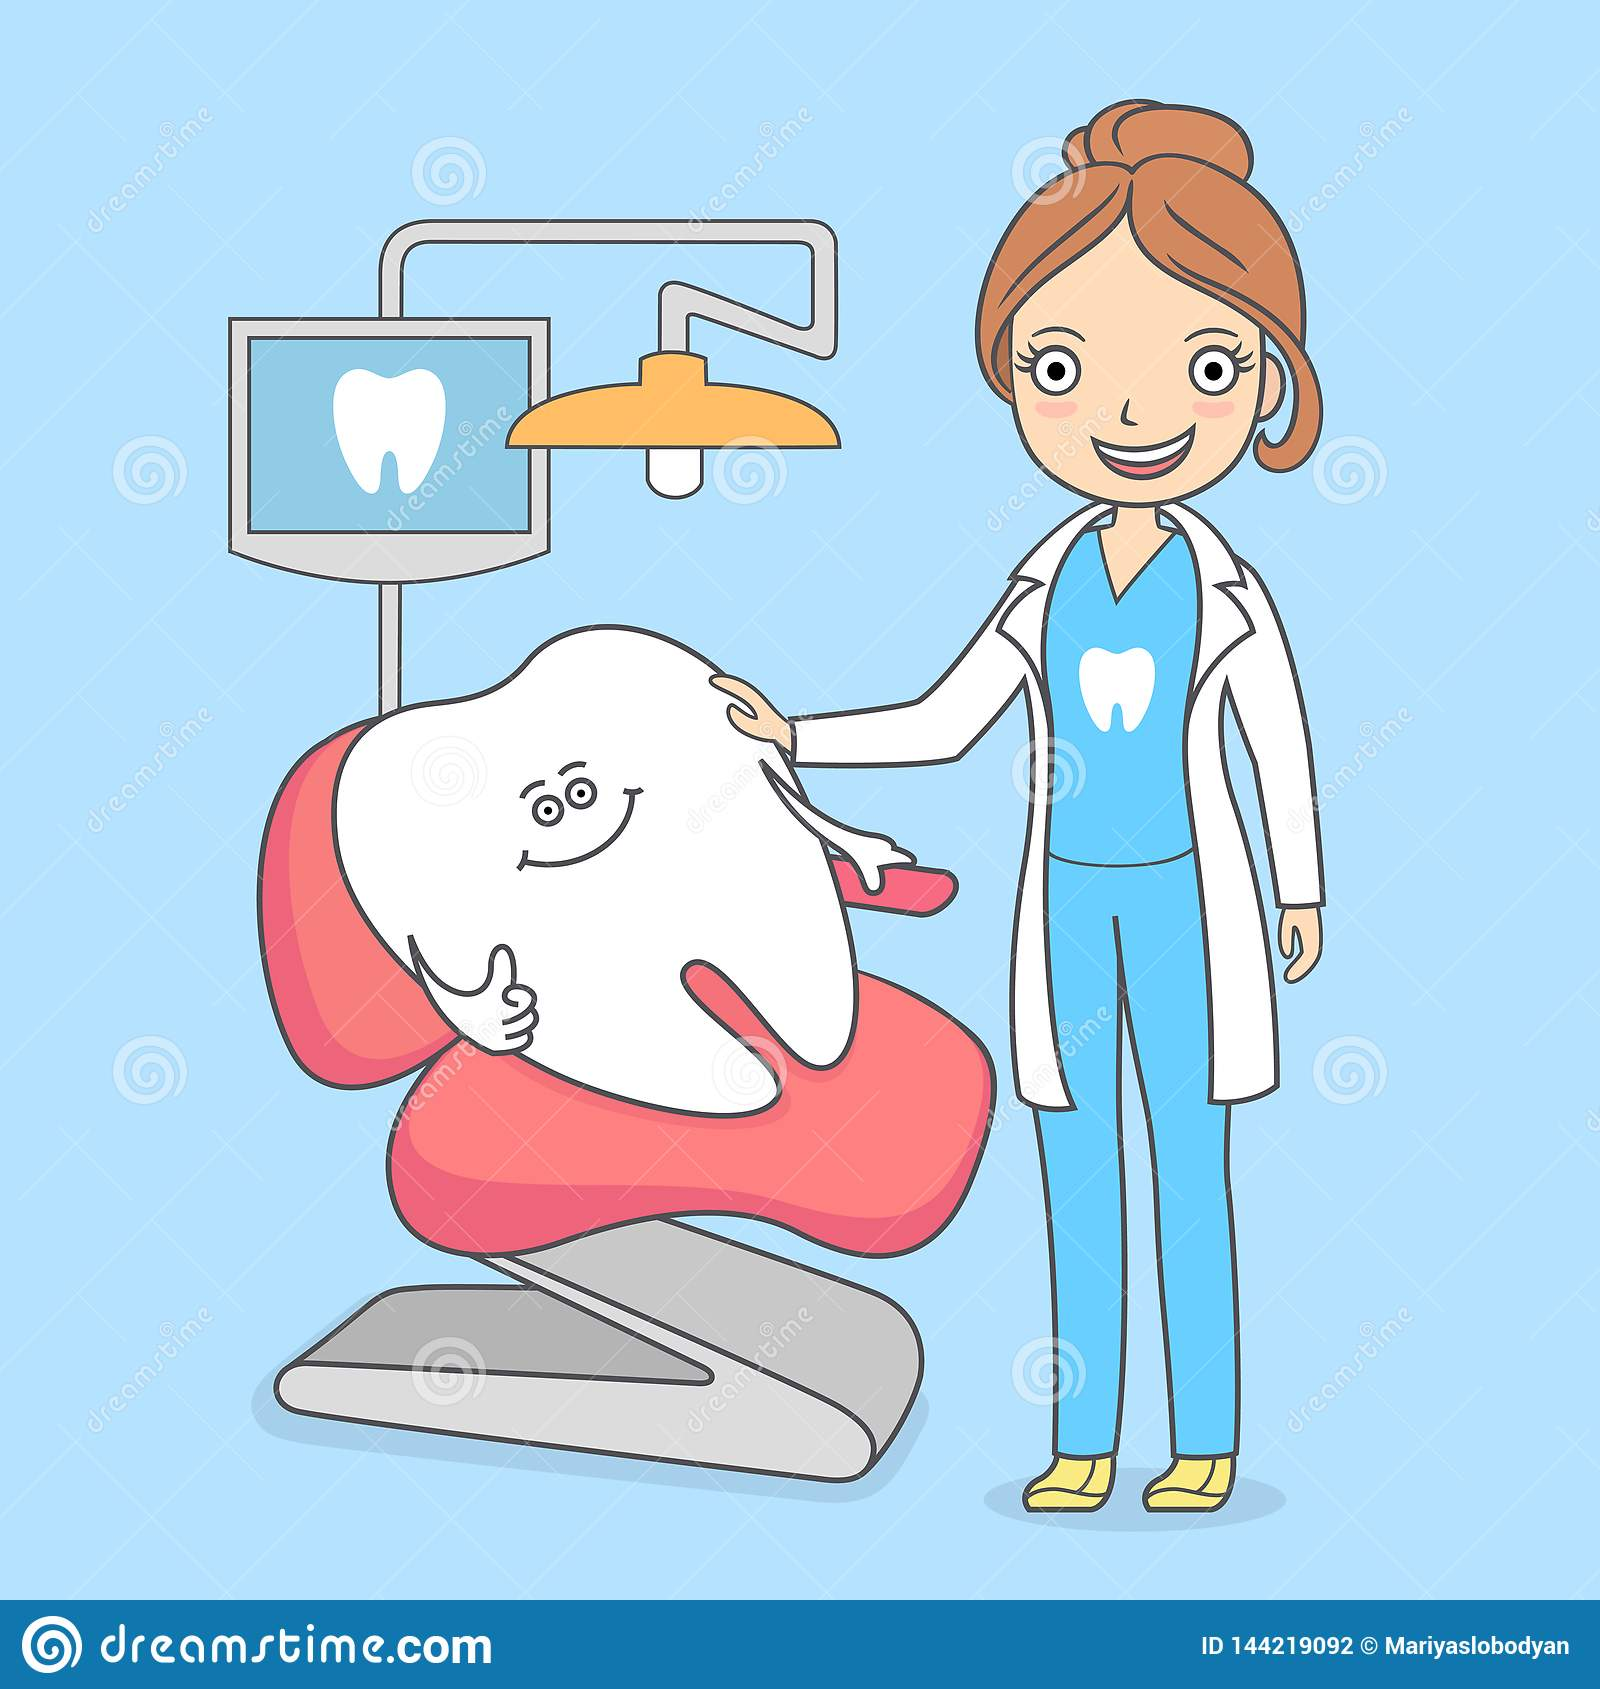 Cartoon Tooth Visiting A Dental Office Tooth Sitting In A Chair And A Dentist Woman Treating Teeth Stock Vector Illustration Of Healthy Cartoon 144219092